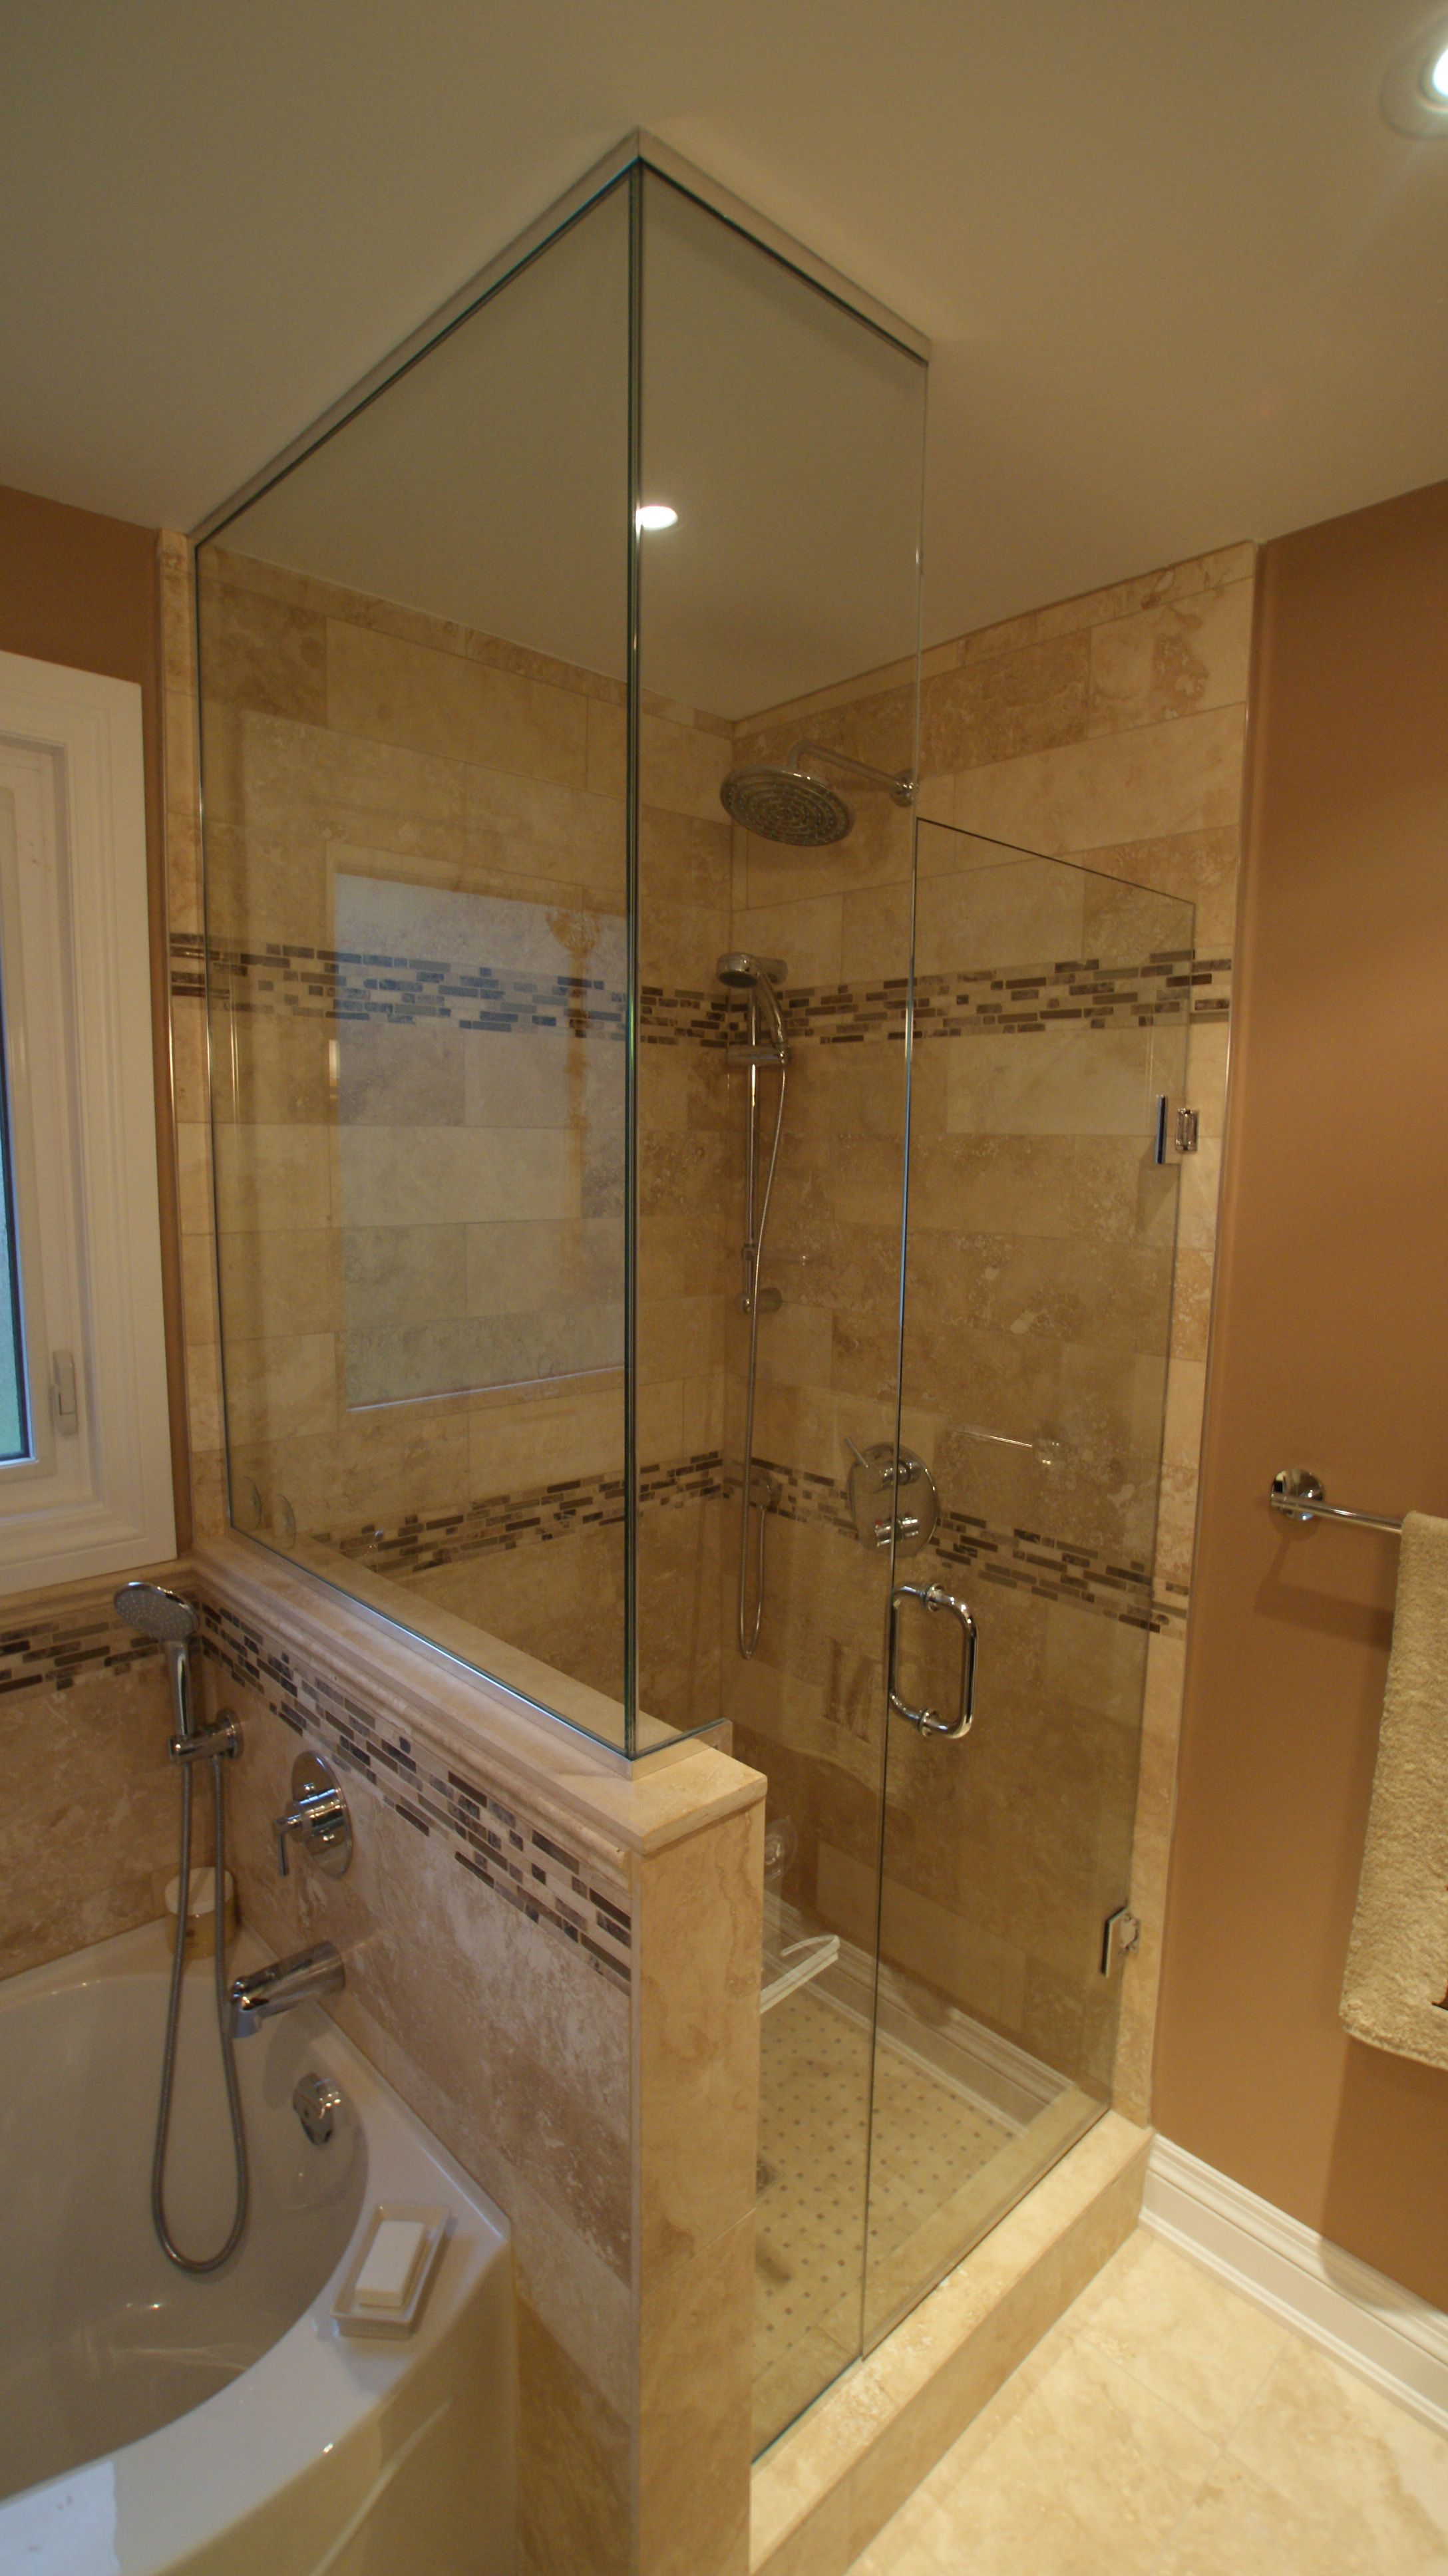 Bathroom Designs With Jacuzzi Tub stand up shower, jacuzzi tub | bathroom design & renovation